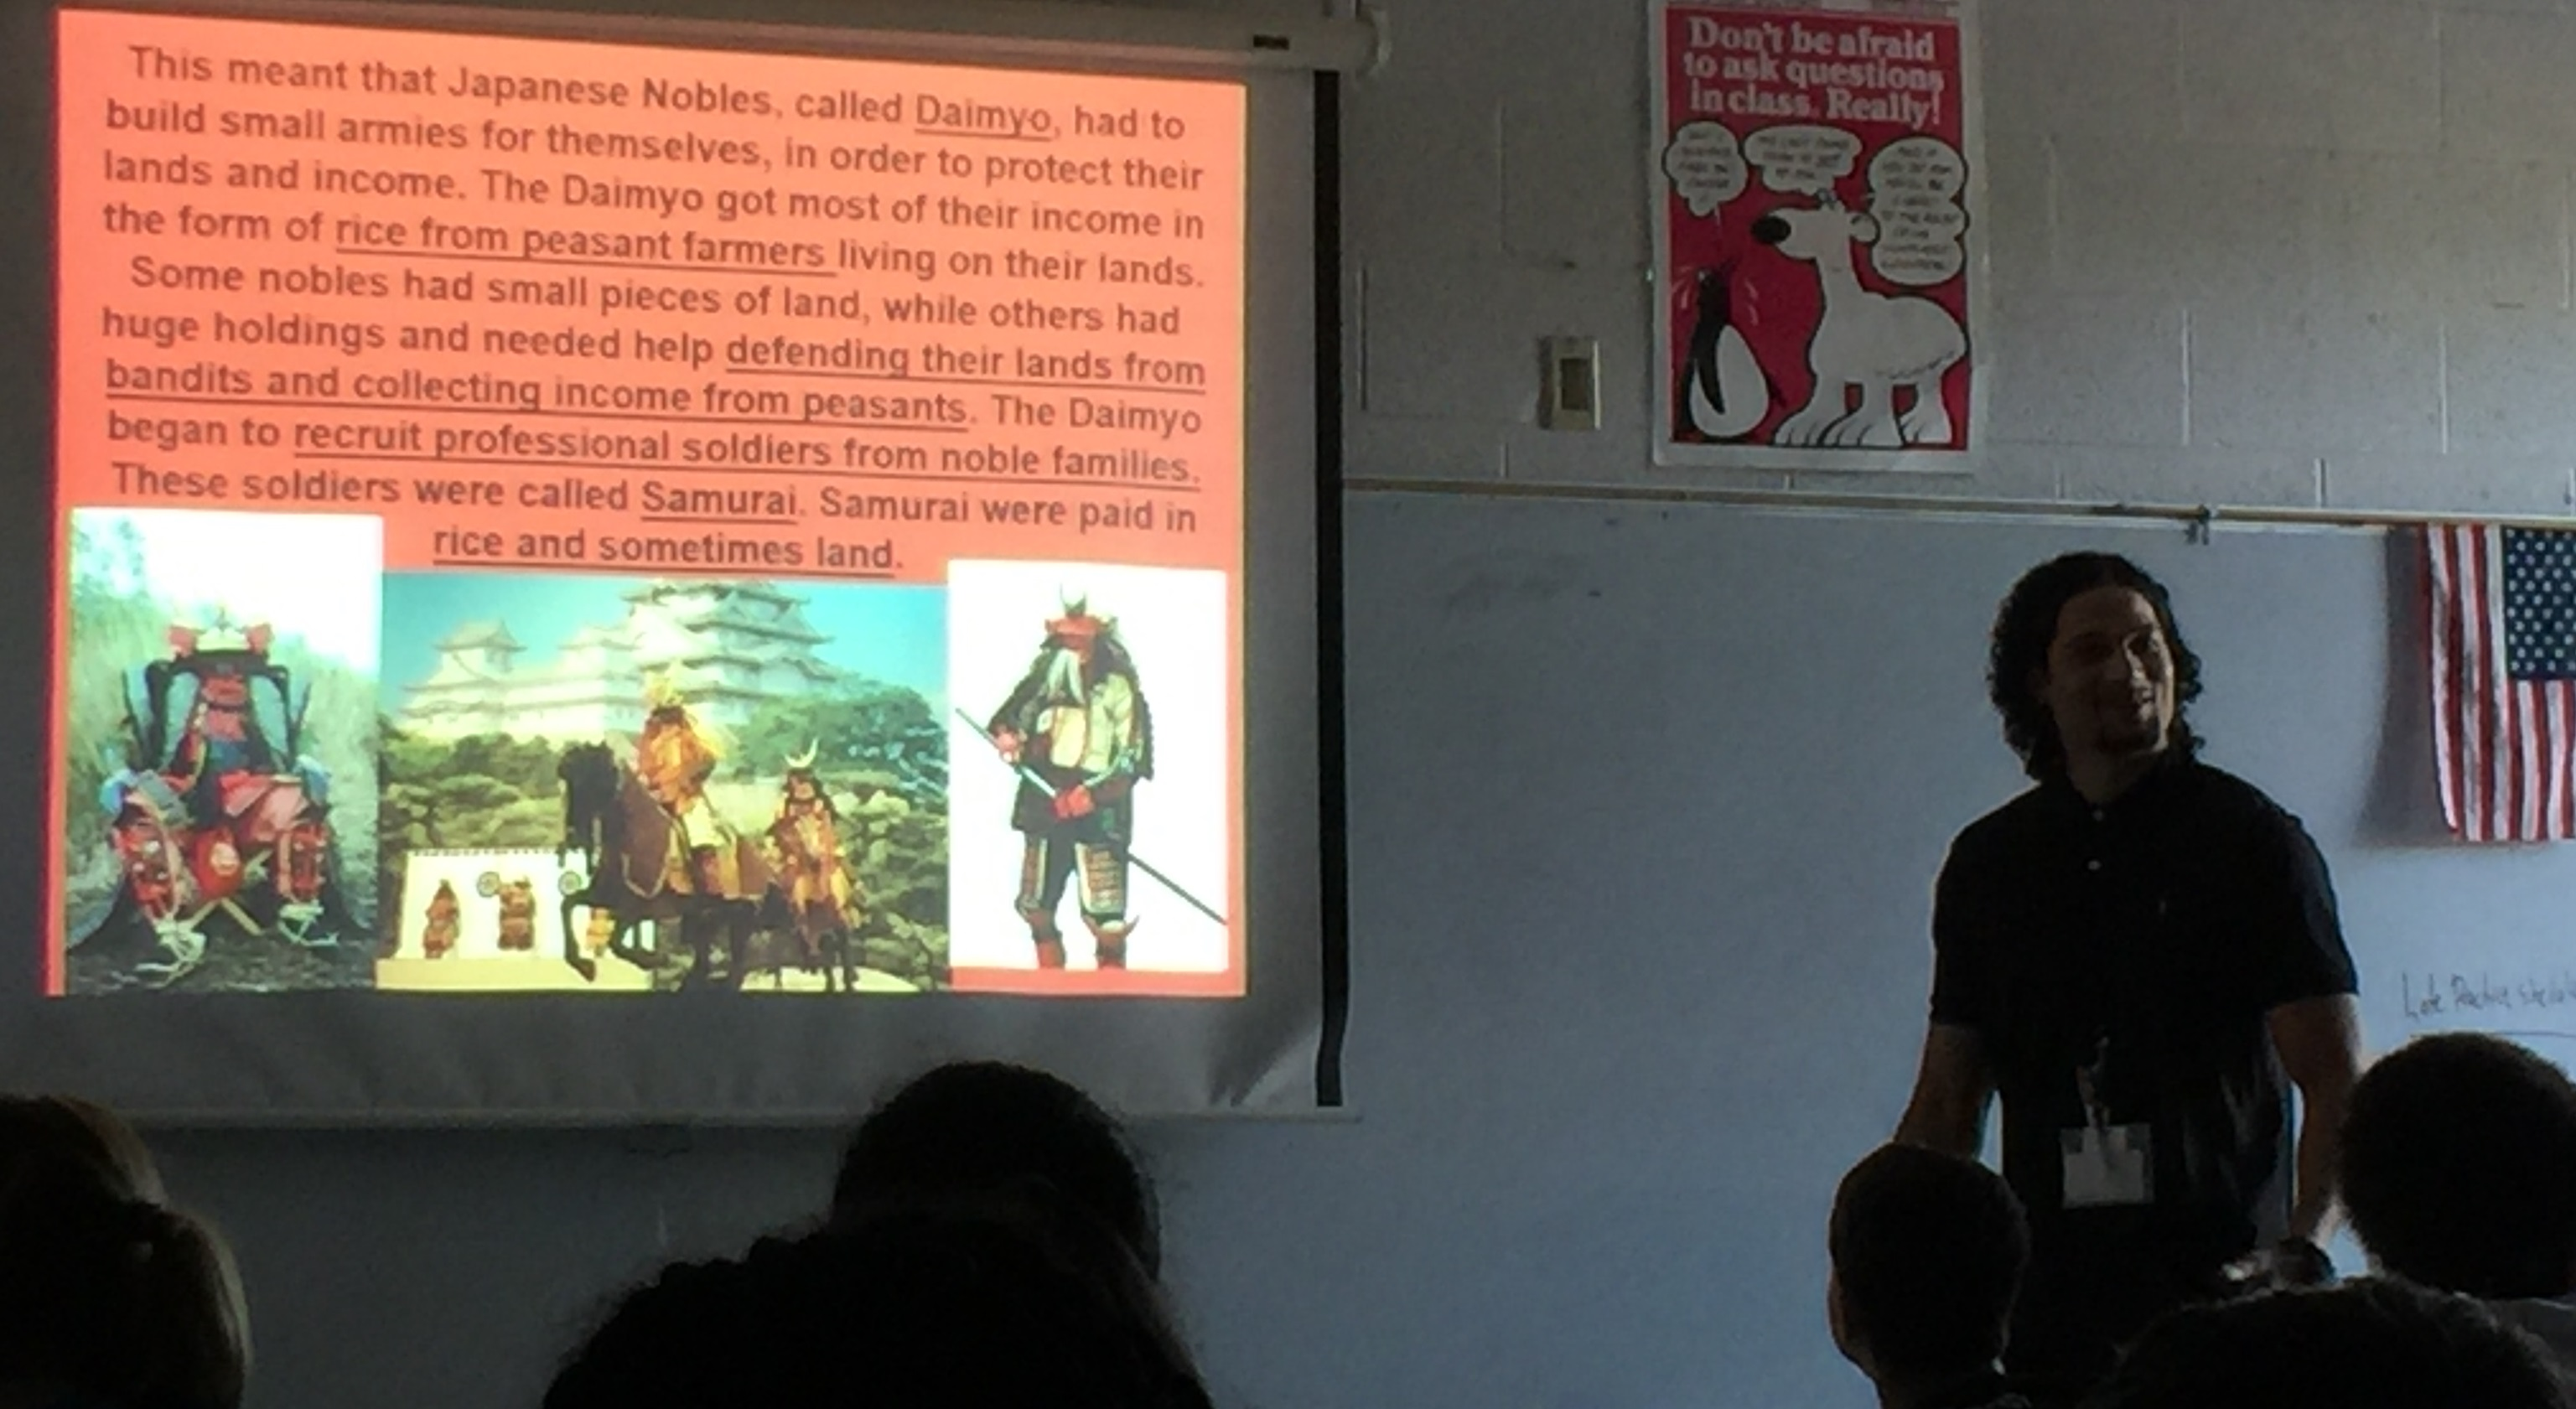 Mr. Simmons discusses the samurai in their study of Japan